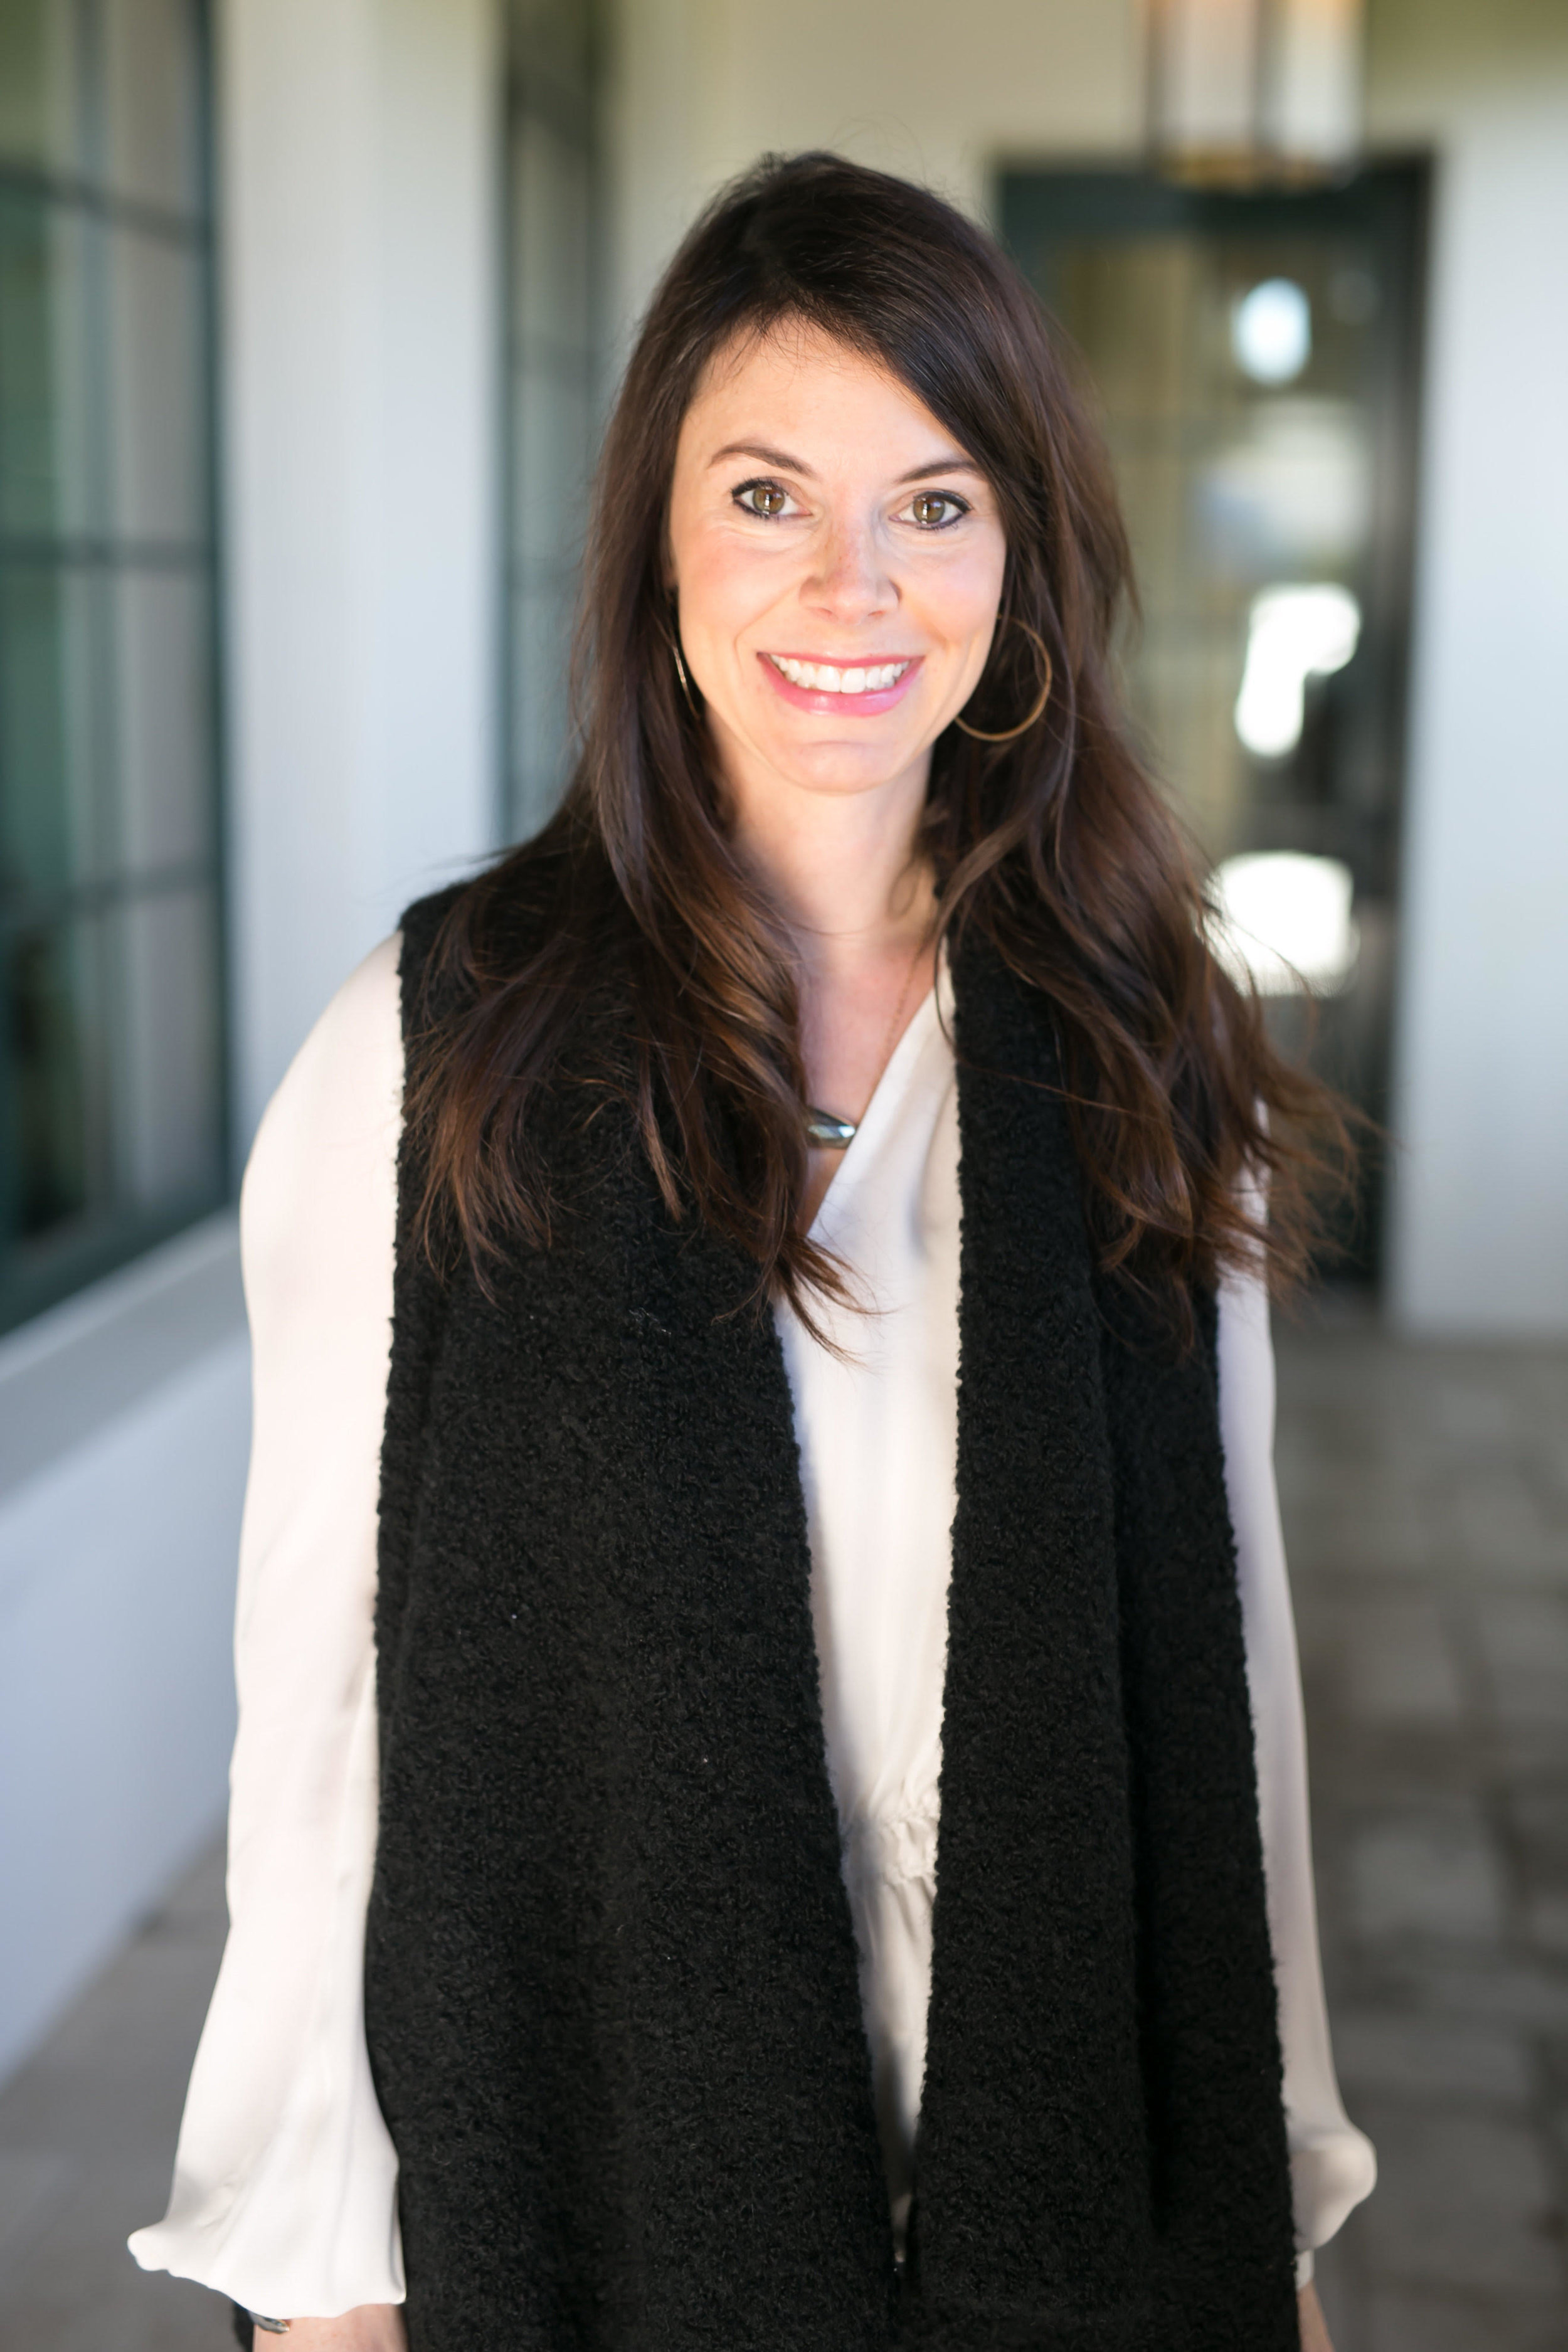 Courtney Moss in an Atlanta-based interior designer